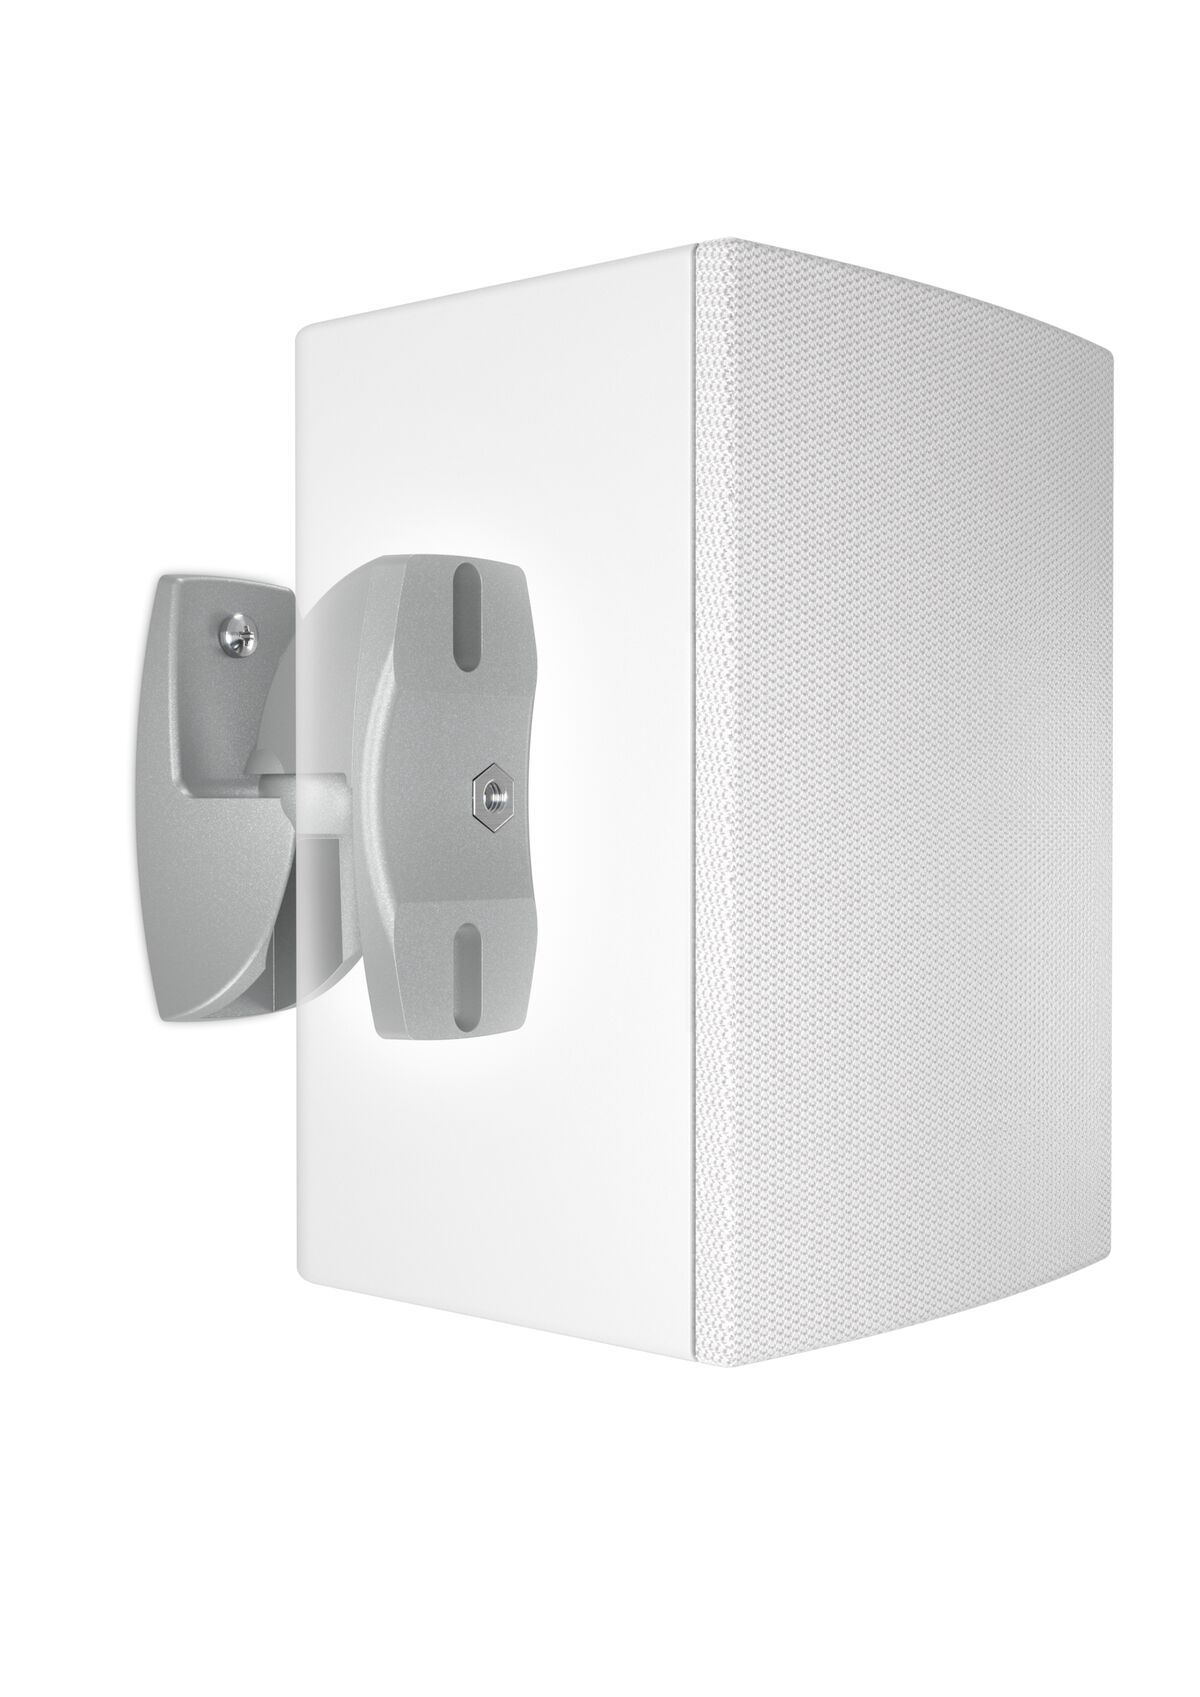 Vogel's VLB 500 Speaker Wall Mounts (2x